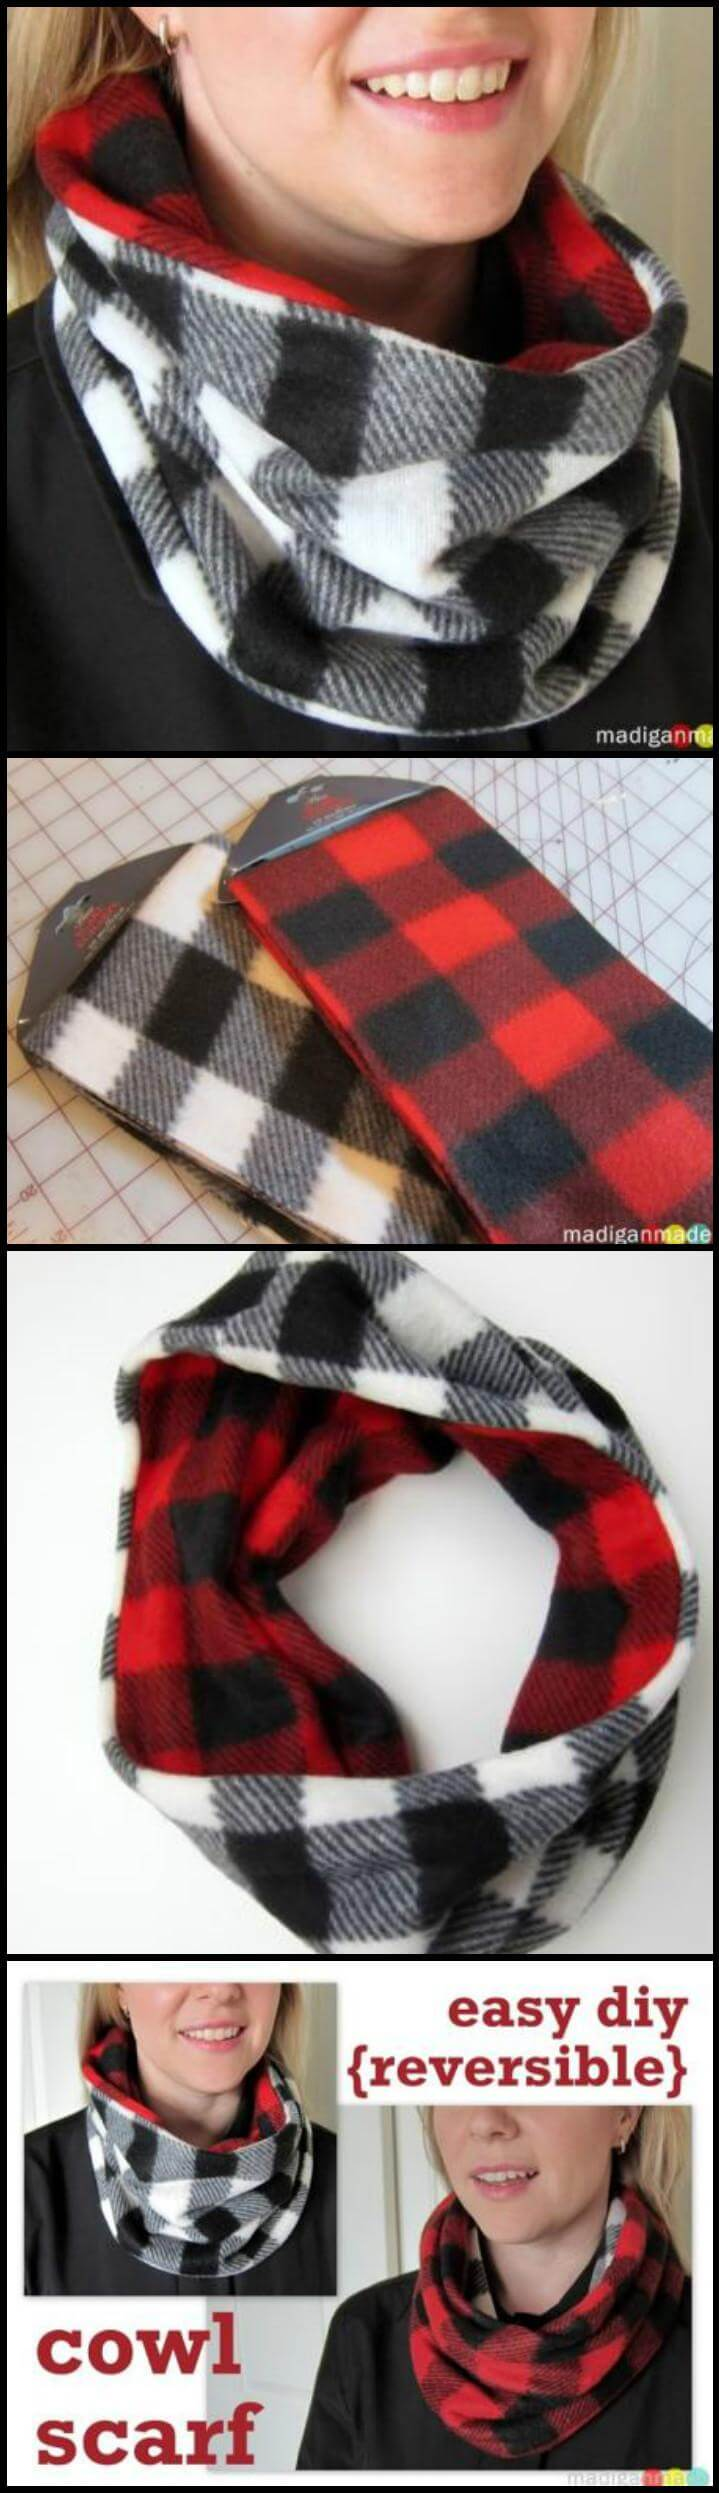 self-made reversible cowl infinity scarf